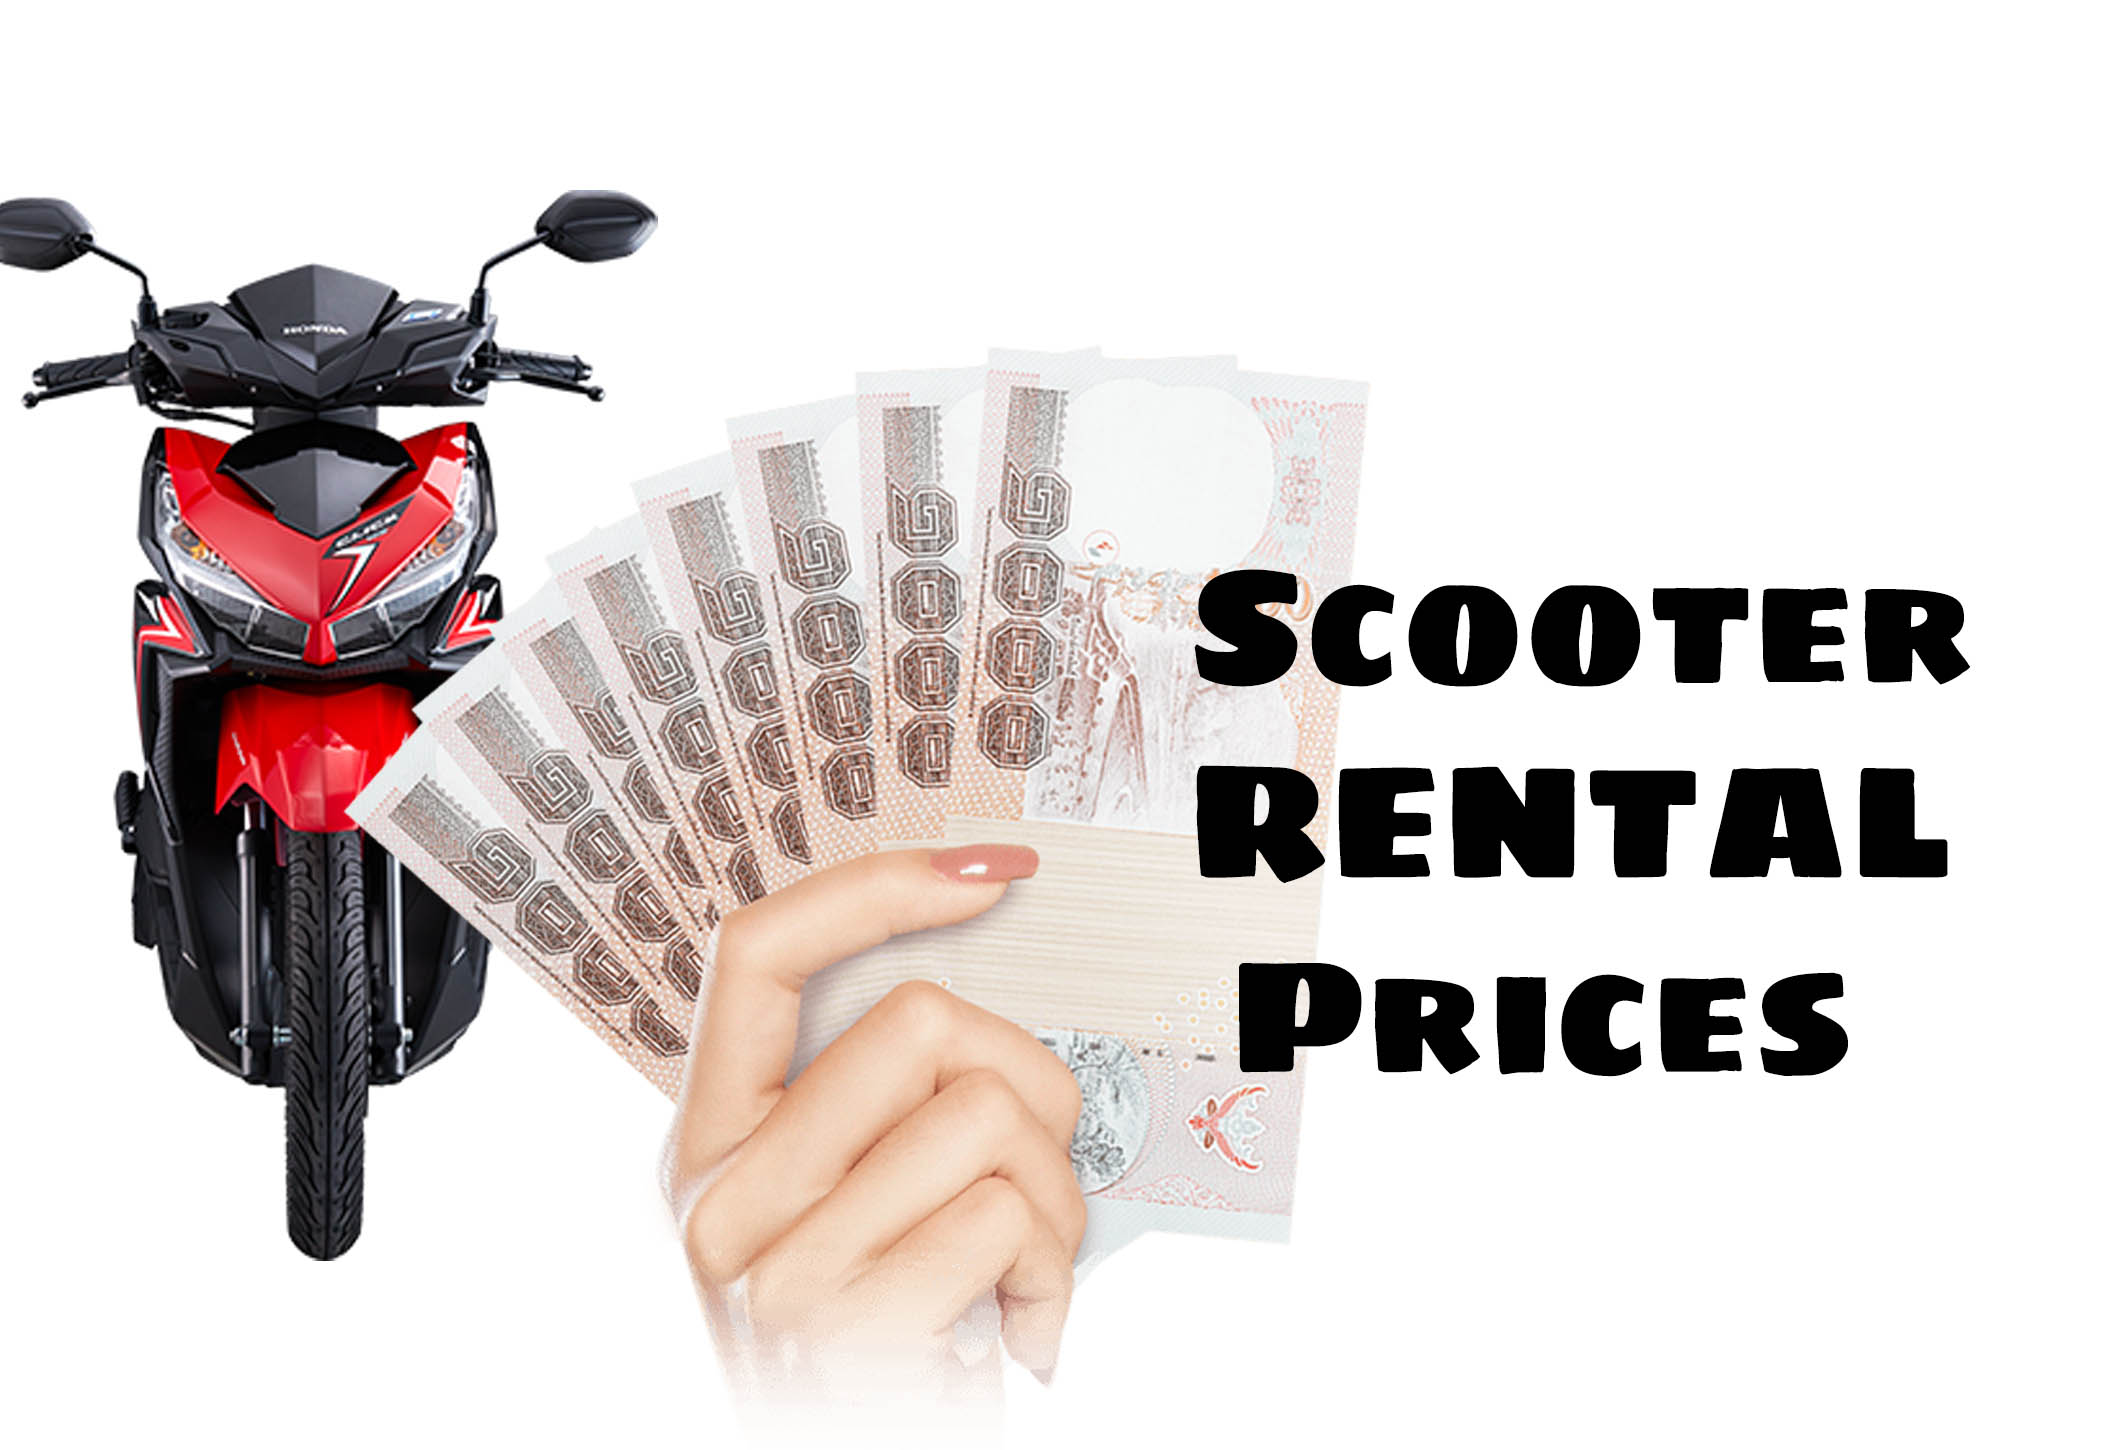 Scooter Rental Prices